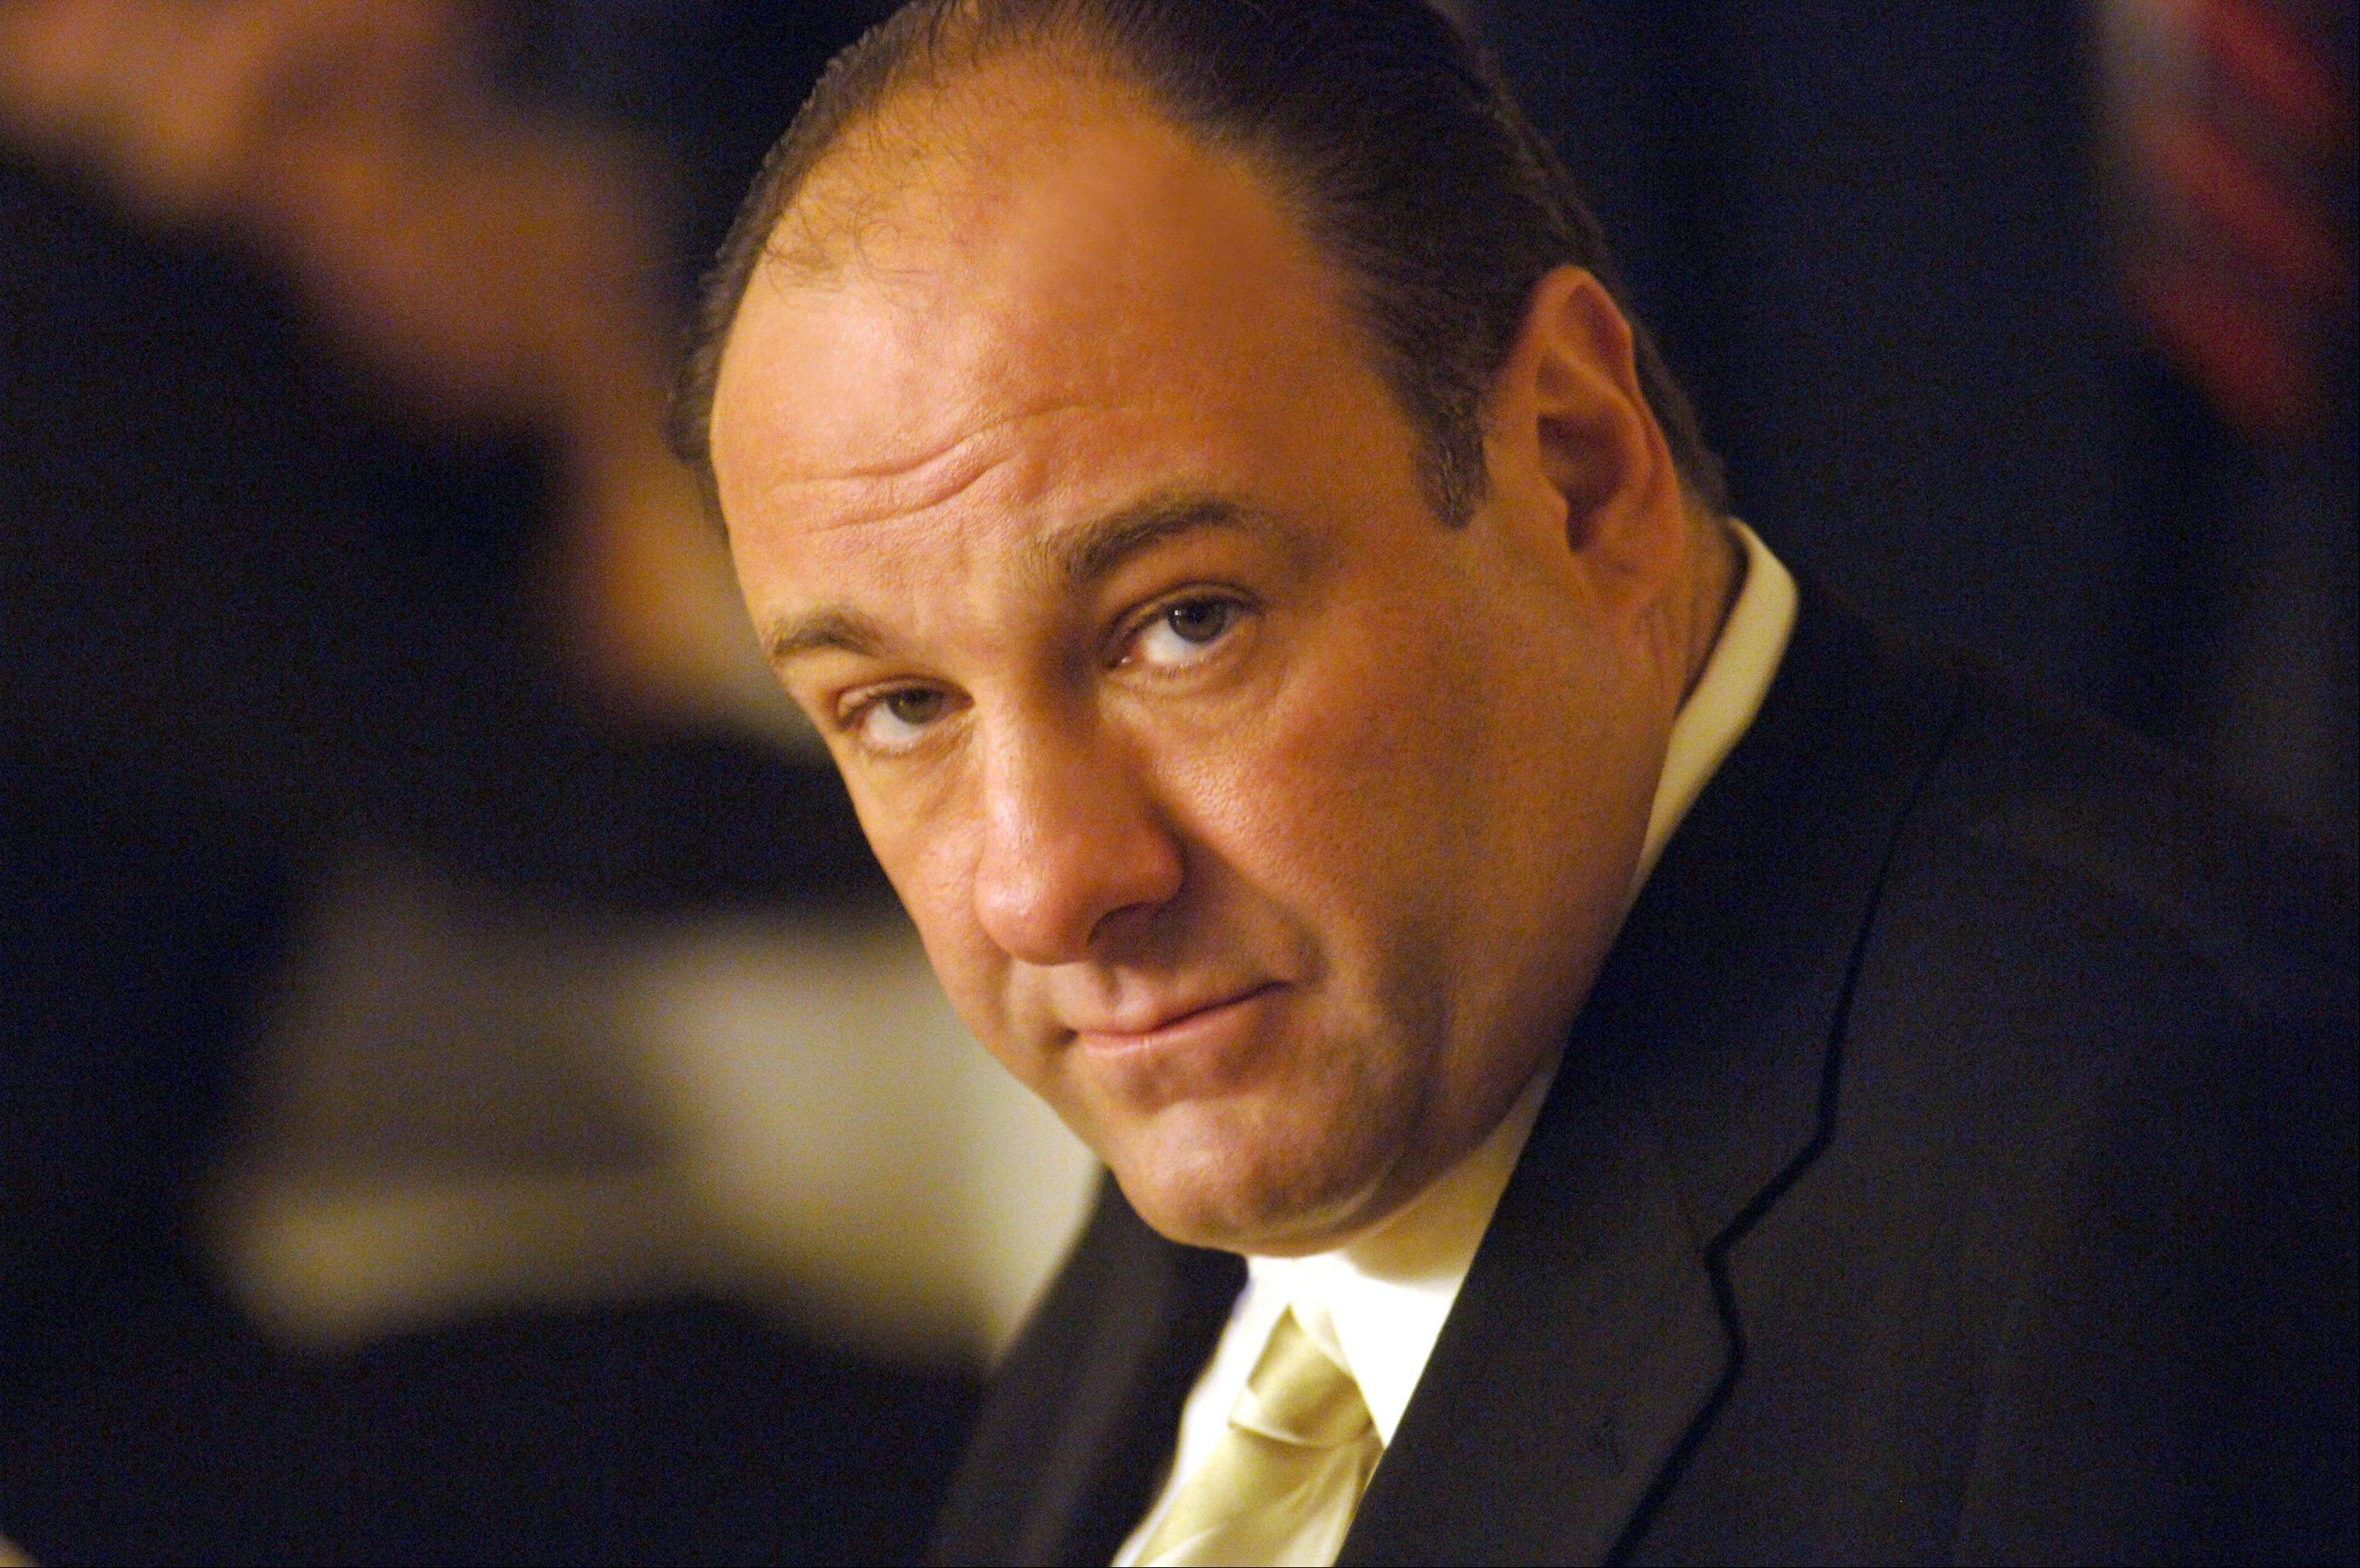 Actor James Gandolfini in his role as Tony Soprano. The actor died Wednesday, June 19, 2013, in Italy. He was 51.